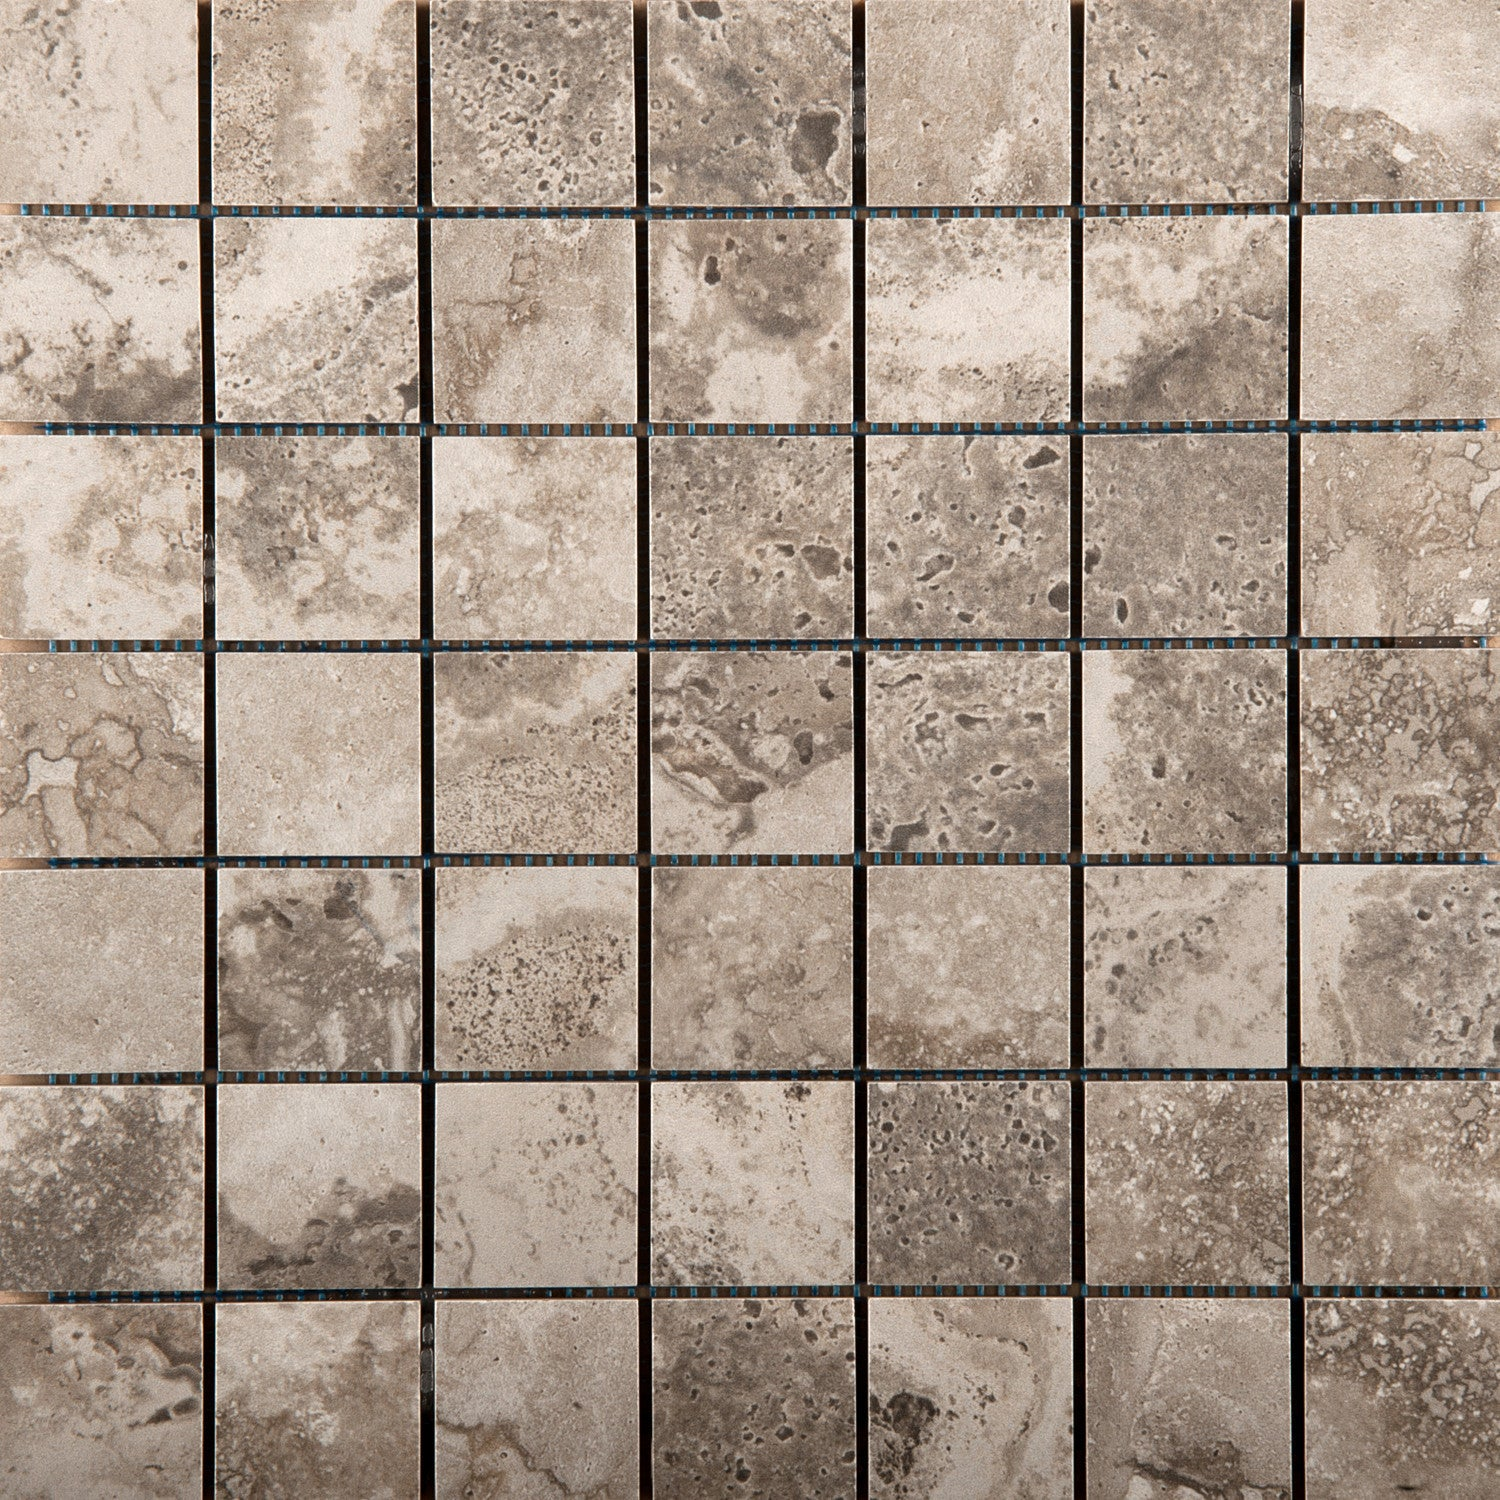 Homestead 2x2 on 13 x 13 mosaic mesh glazed porcelain tile homestead 2x2 on 13 x 13 mosaic mesh glazed porcelain tile by emser dailygadgetfo Gallery